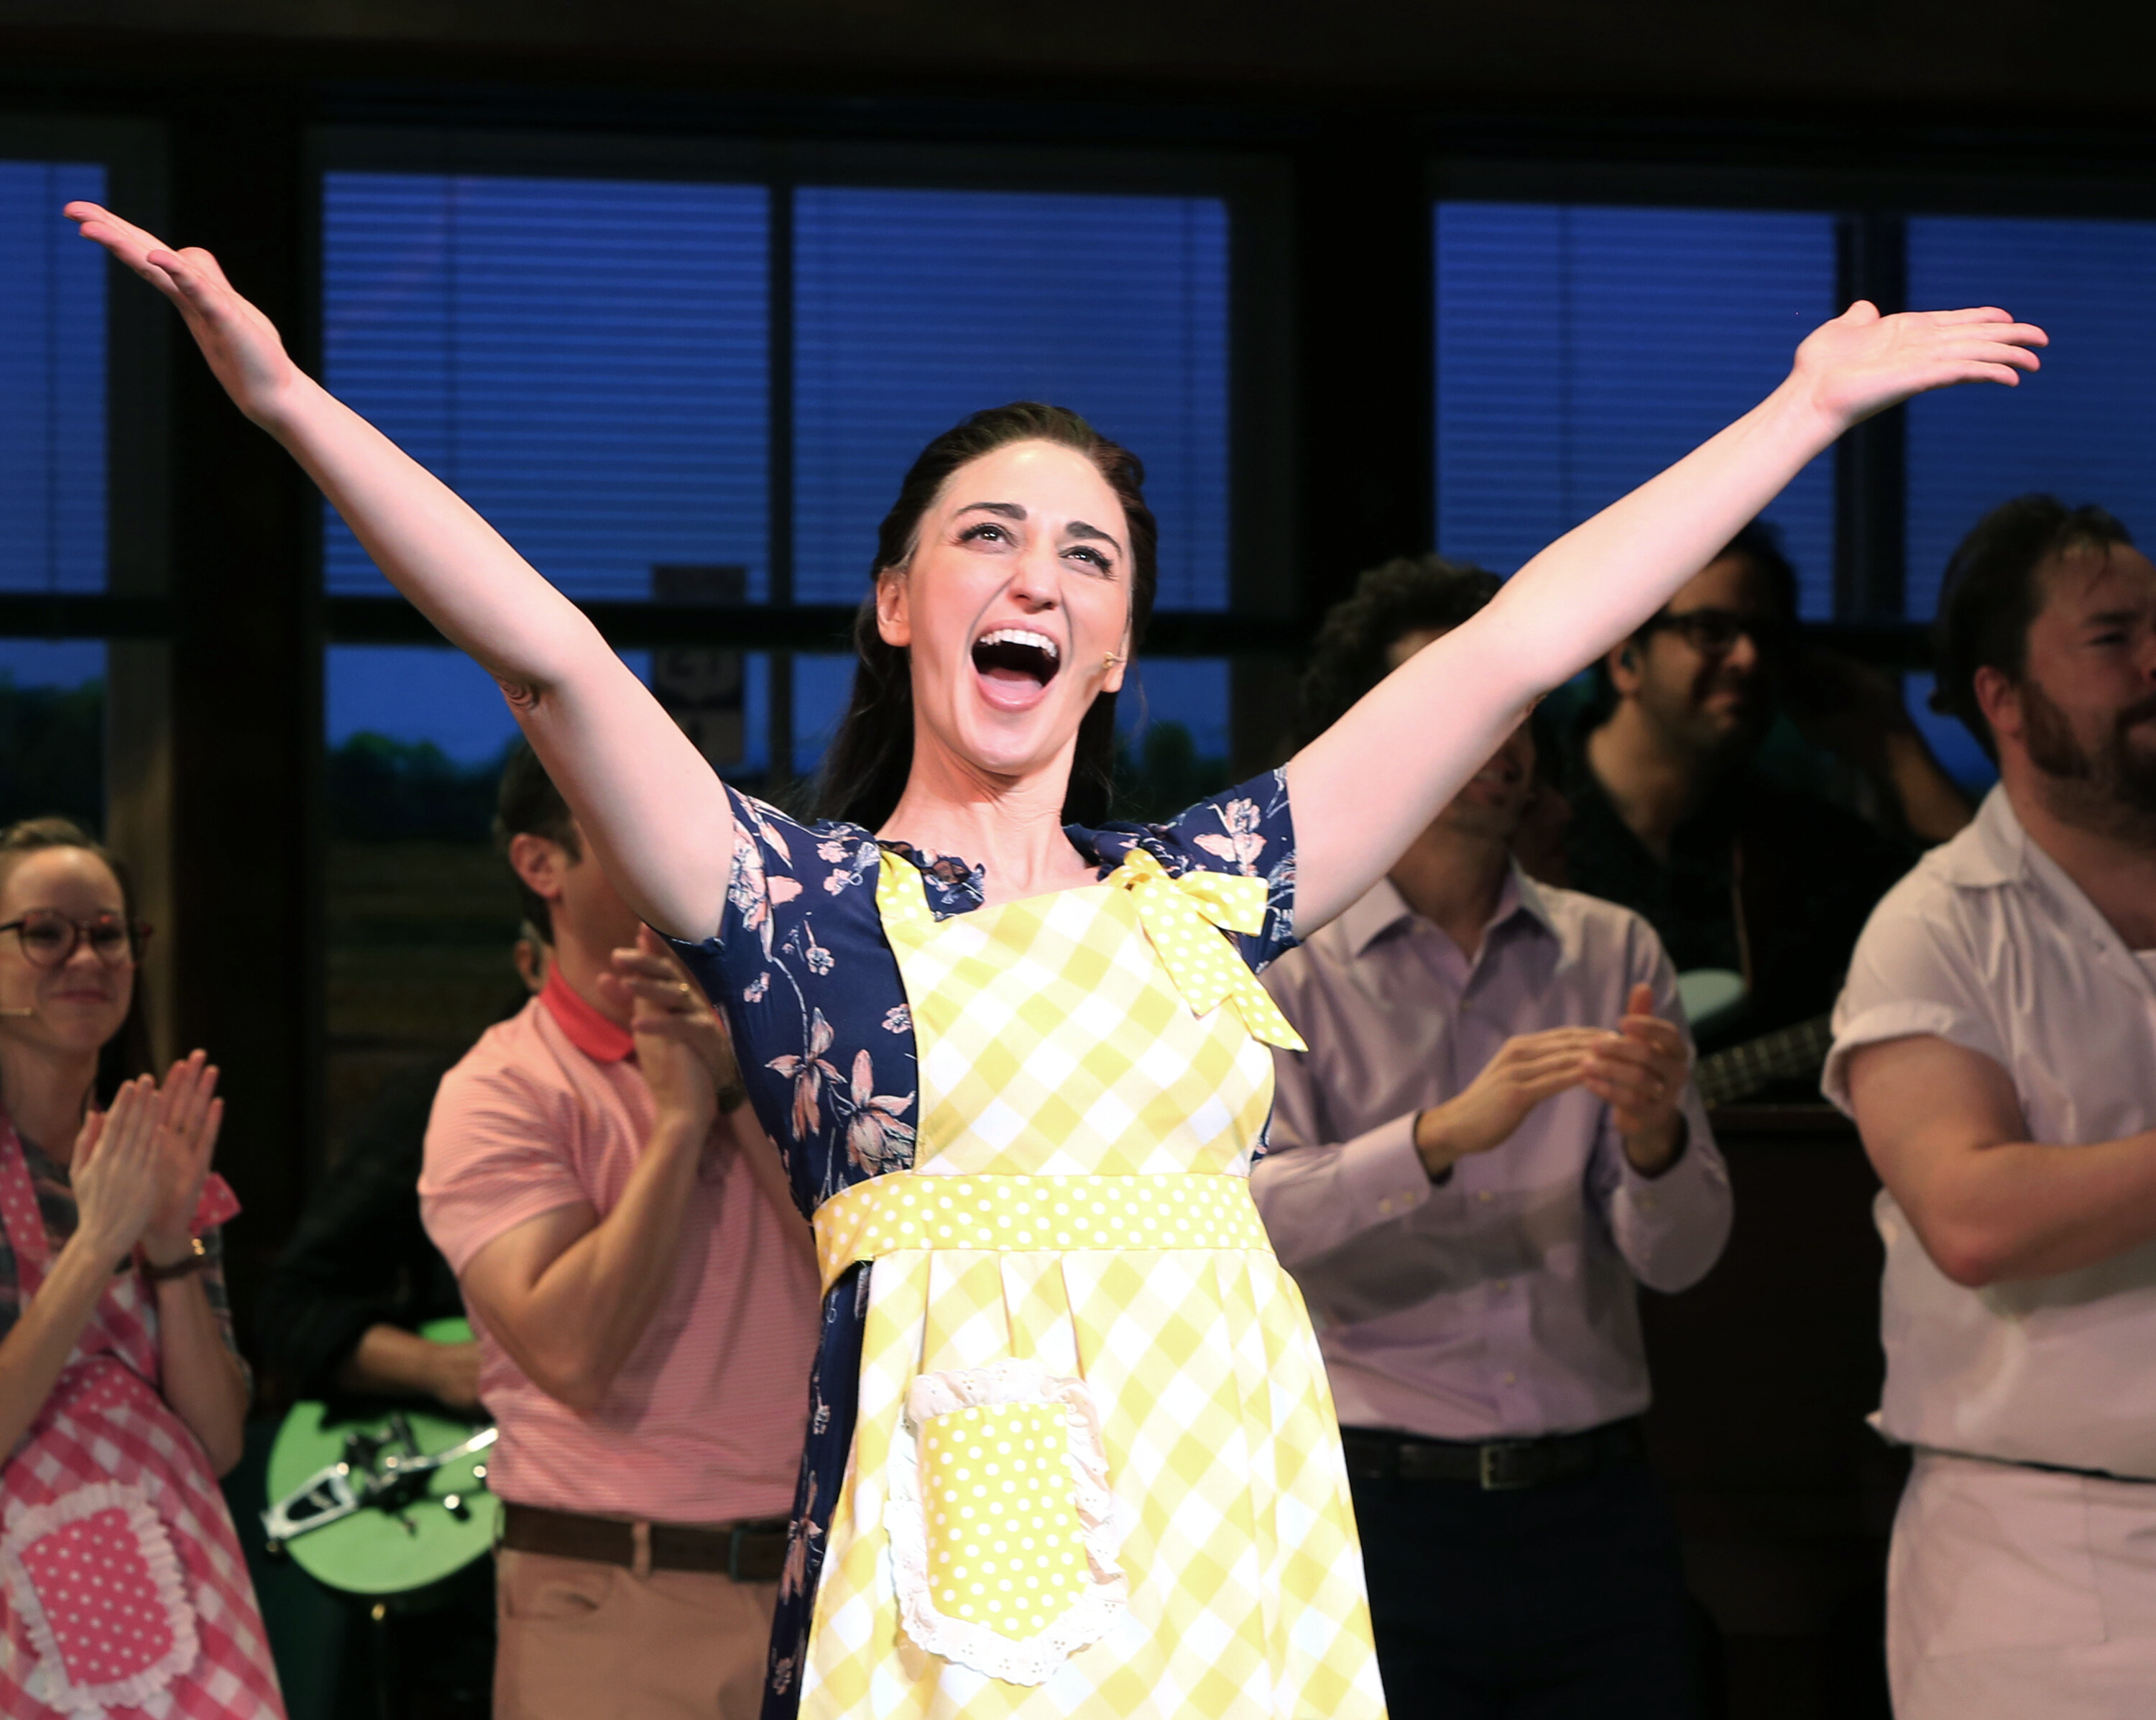 'Waitress' will return to Broadway with Sara Bareilles as lead